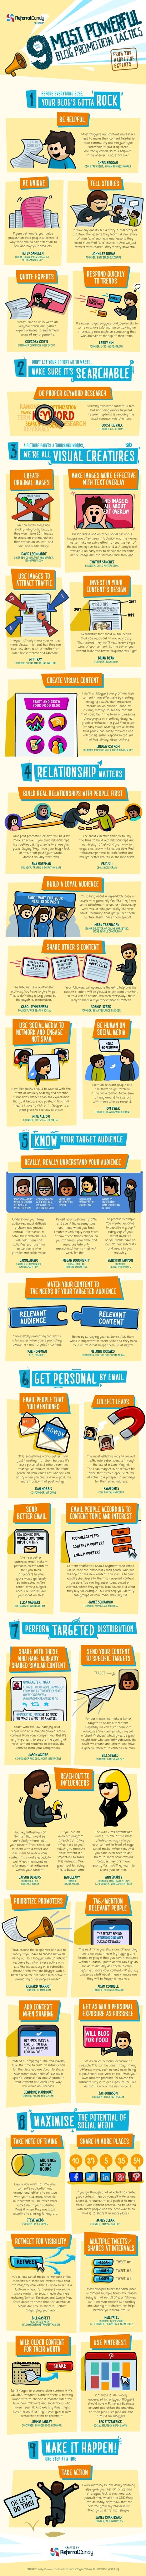 How to Promote Your Stories Effectively #Infographic | Just Story It! Biz Storytelling | Scoop.it